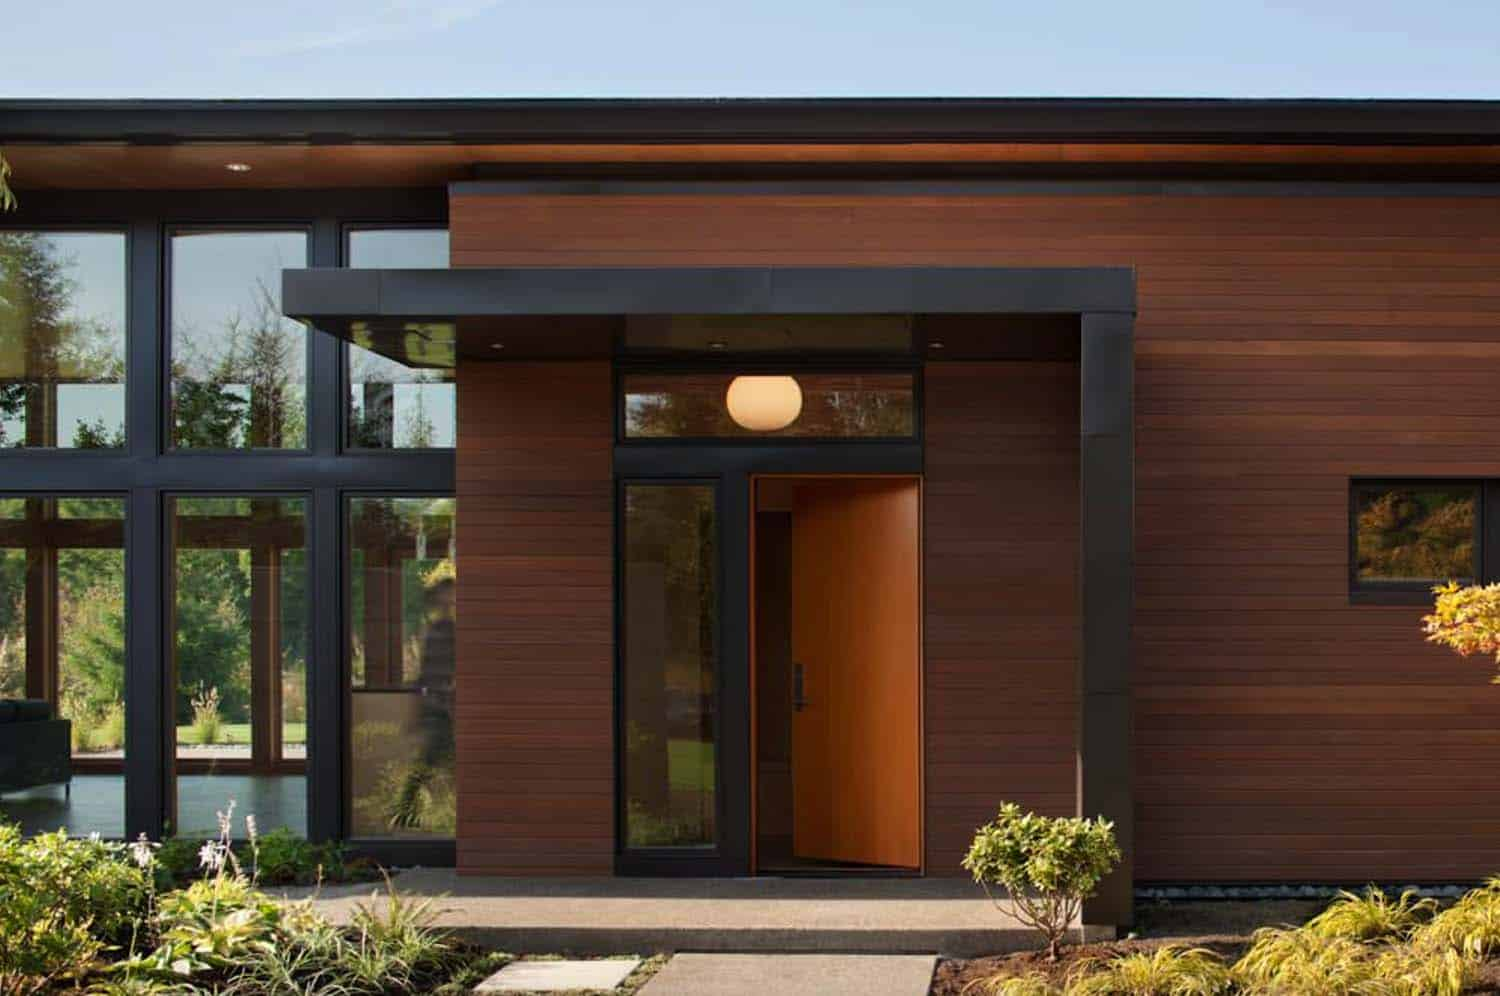 Livable Modern Home-Coates Design Architects-03-1 Kindesign